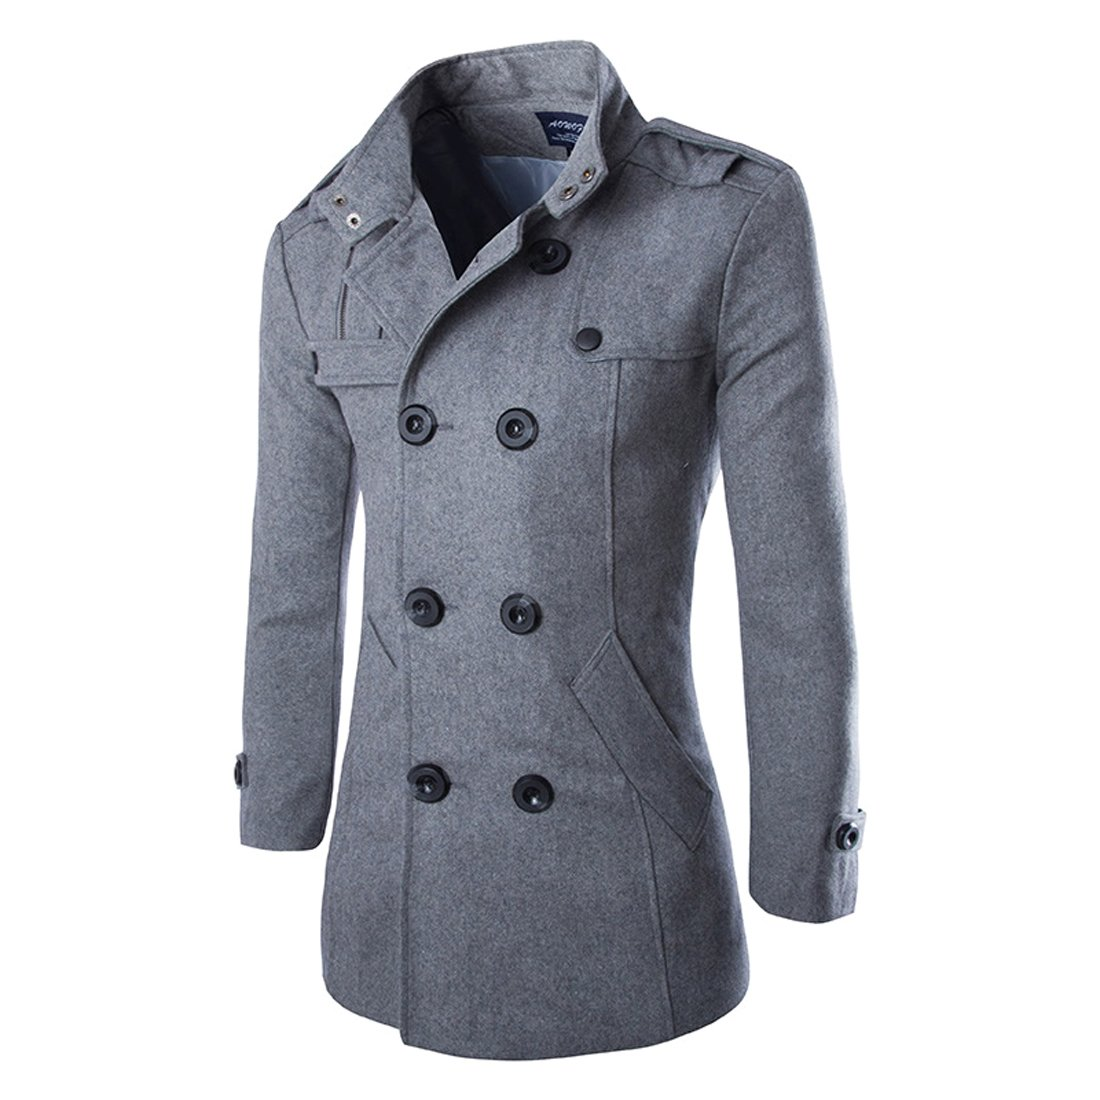 HDH Mens Double Breasted Pea Coat Long Jacket Slim Fit Long Sleeve Casual Lightweight Jacket Parka Trench Coats Blazer Outerwear